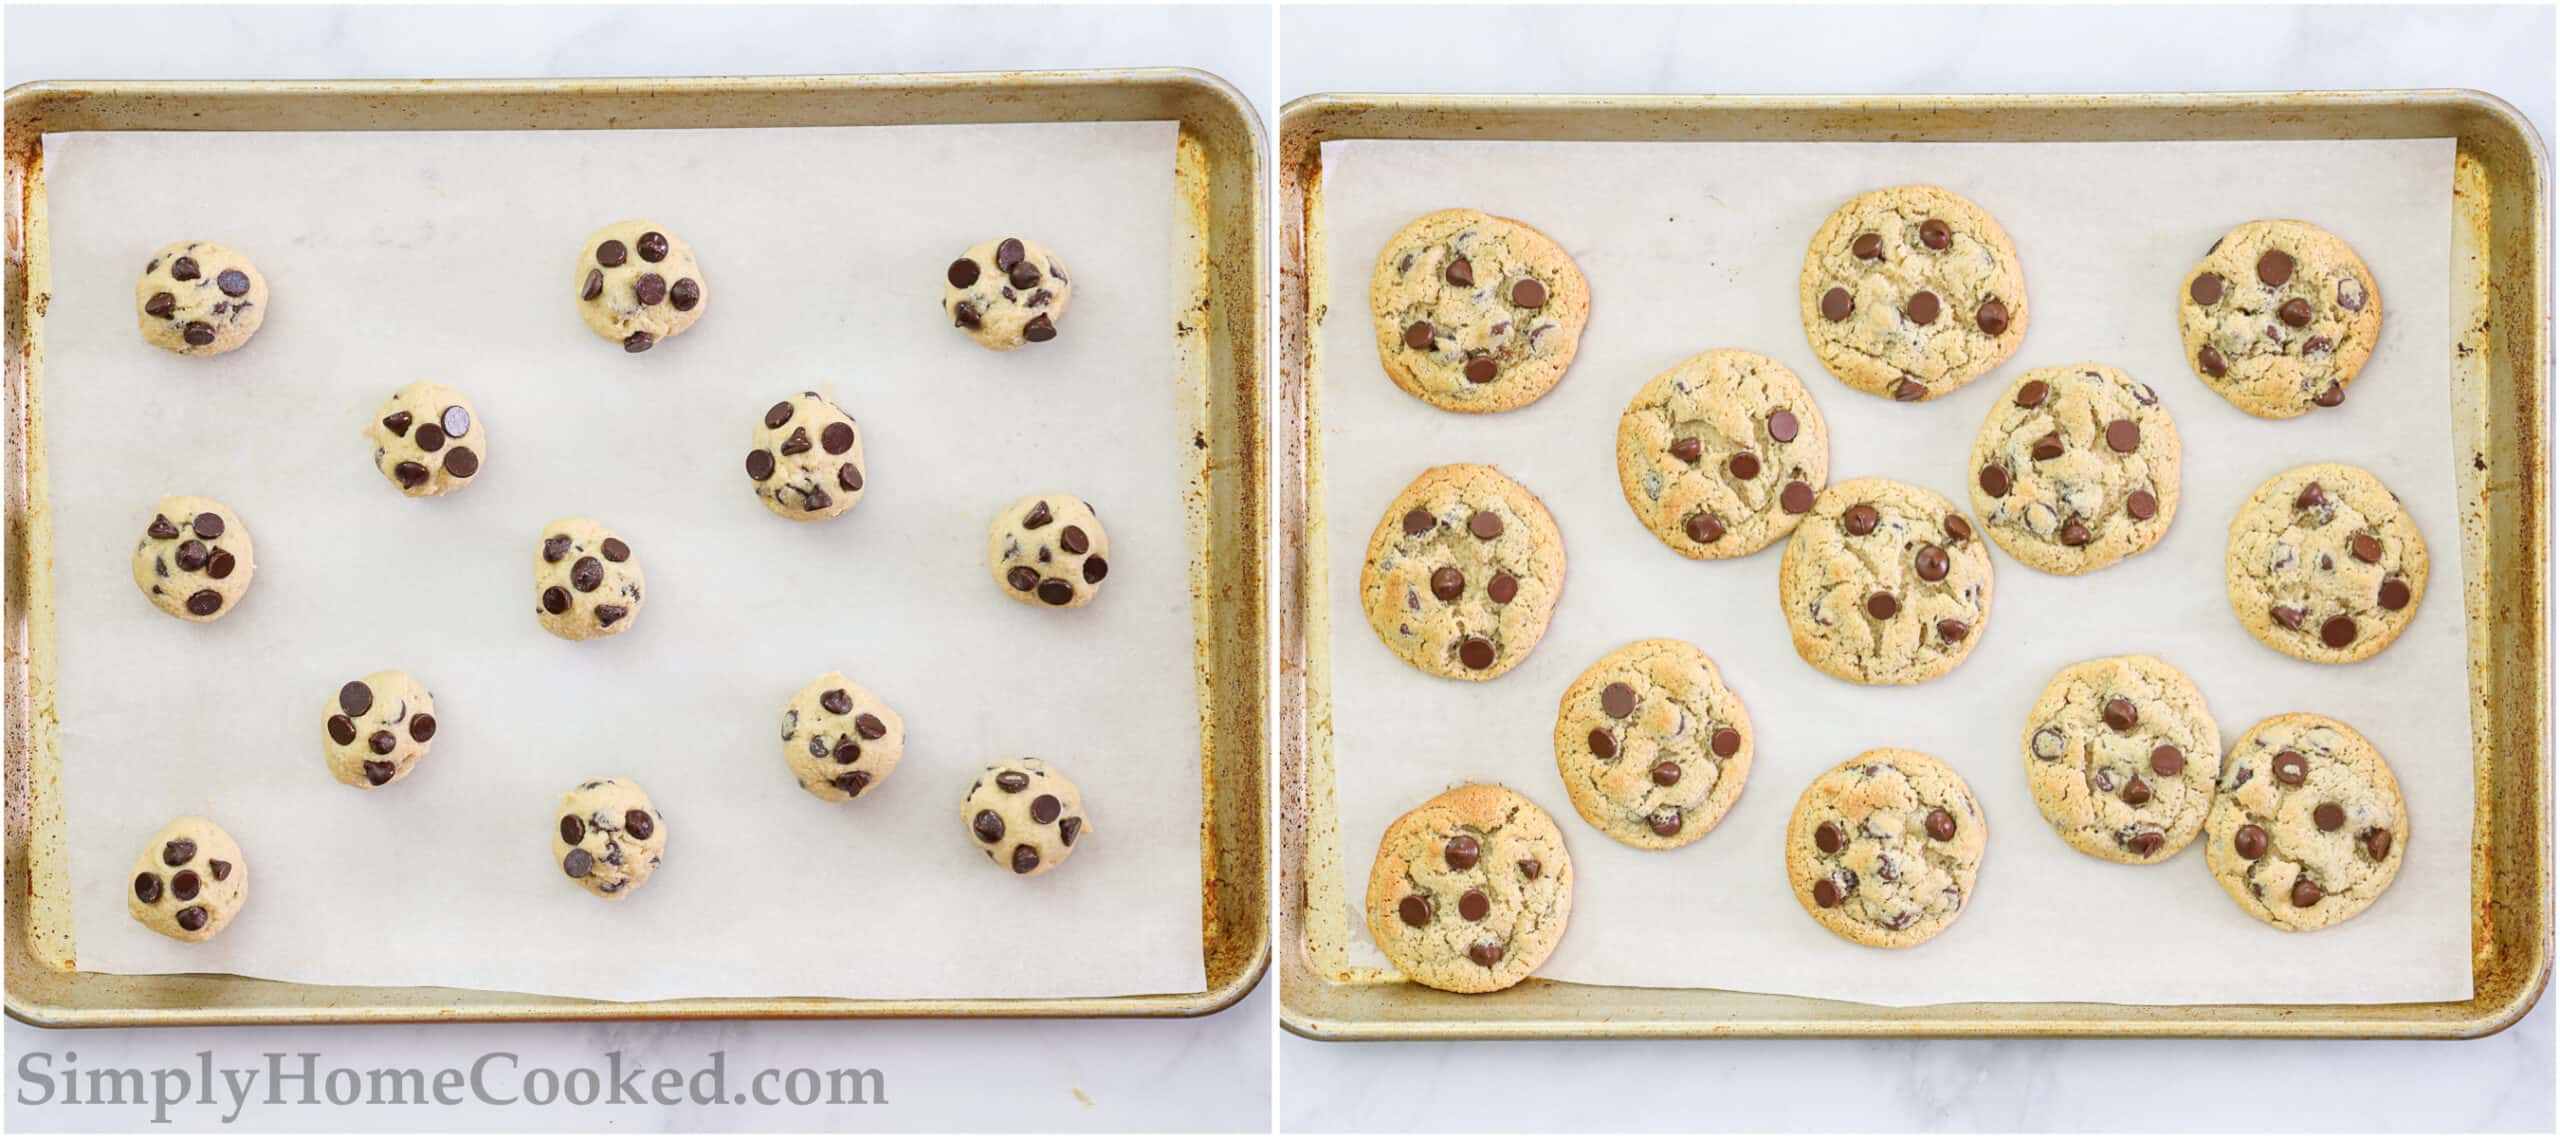 Steps to make Almond Flour Chocolate Chip Cookies, including rolling scoops of dough out, adding chocolate chips to the top of each, and then baking them on a sheet pan.